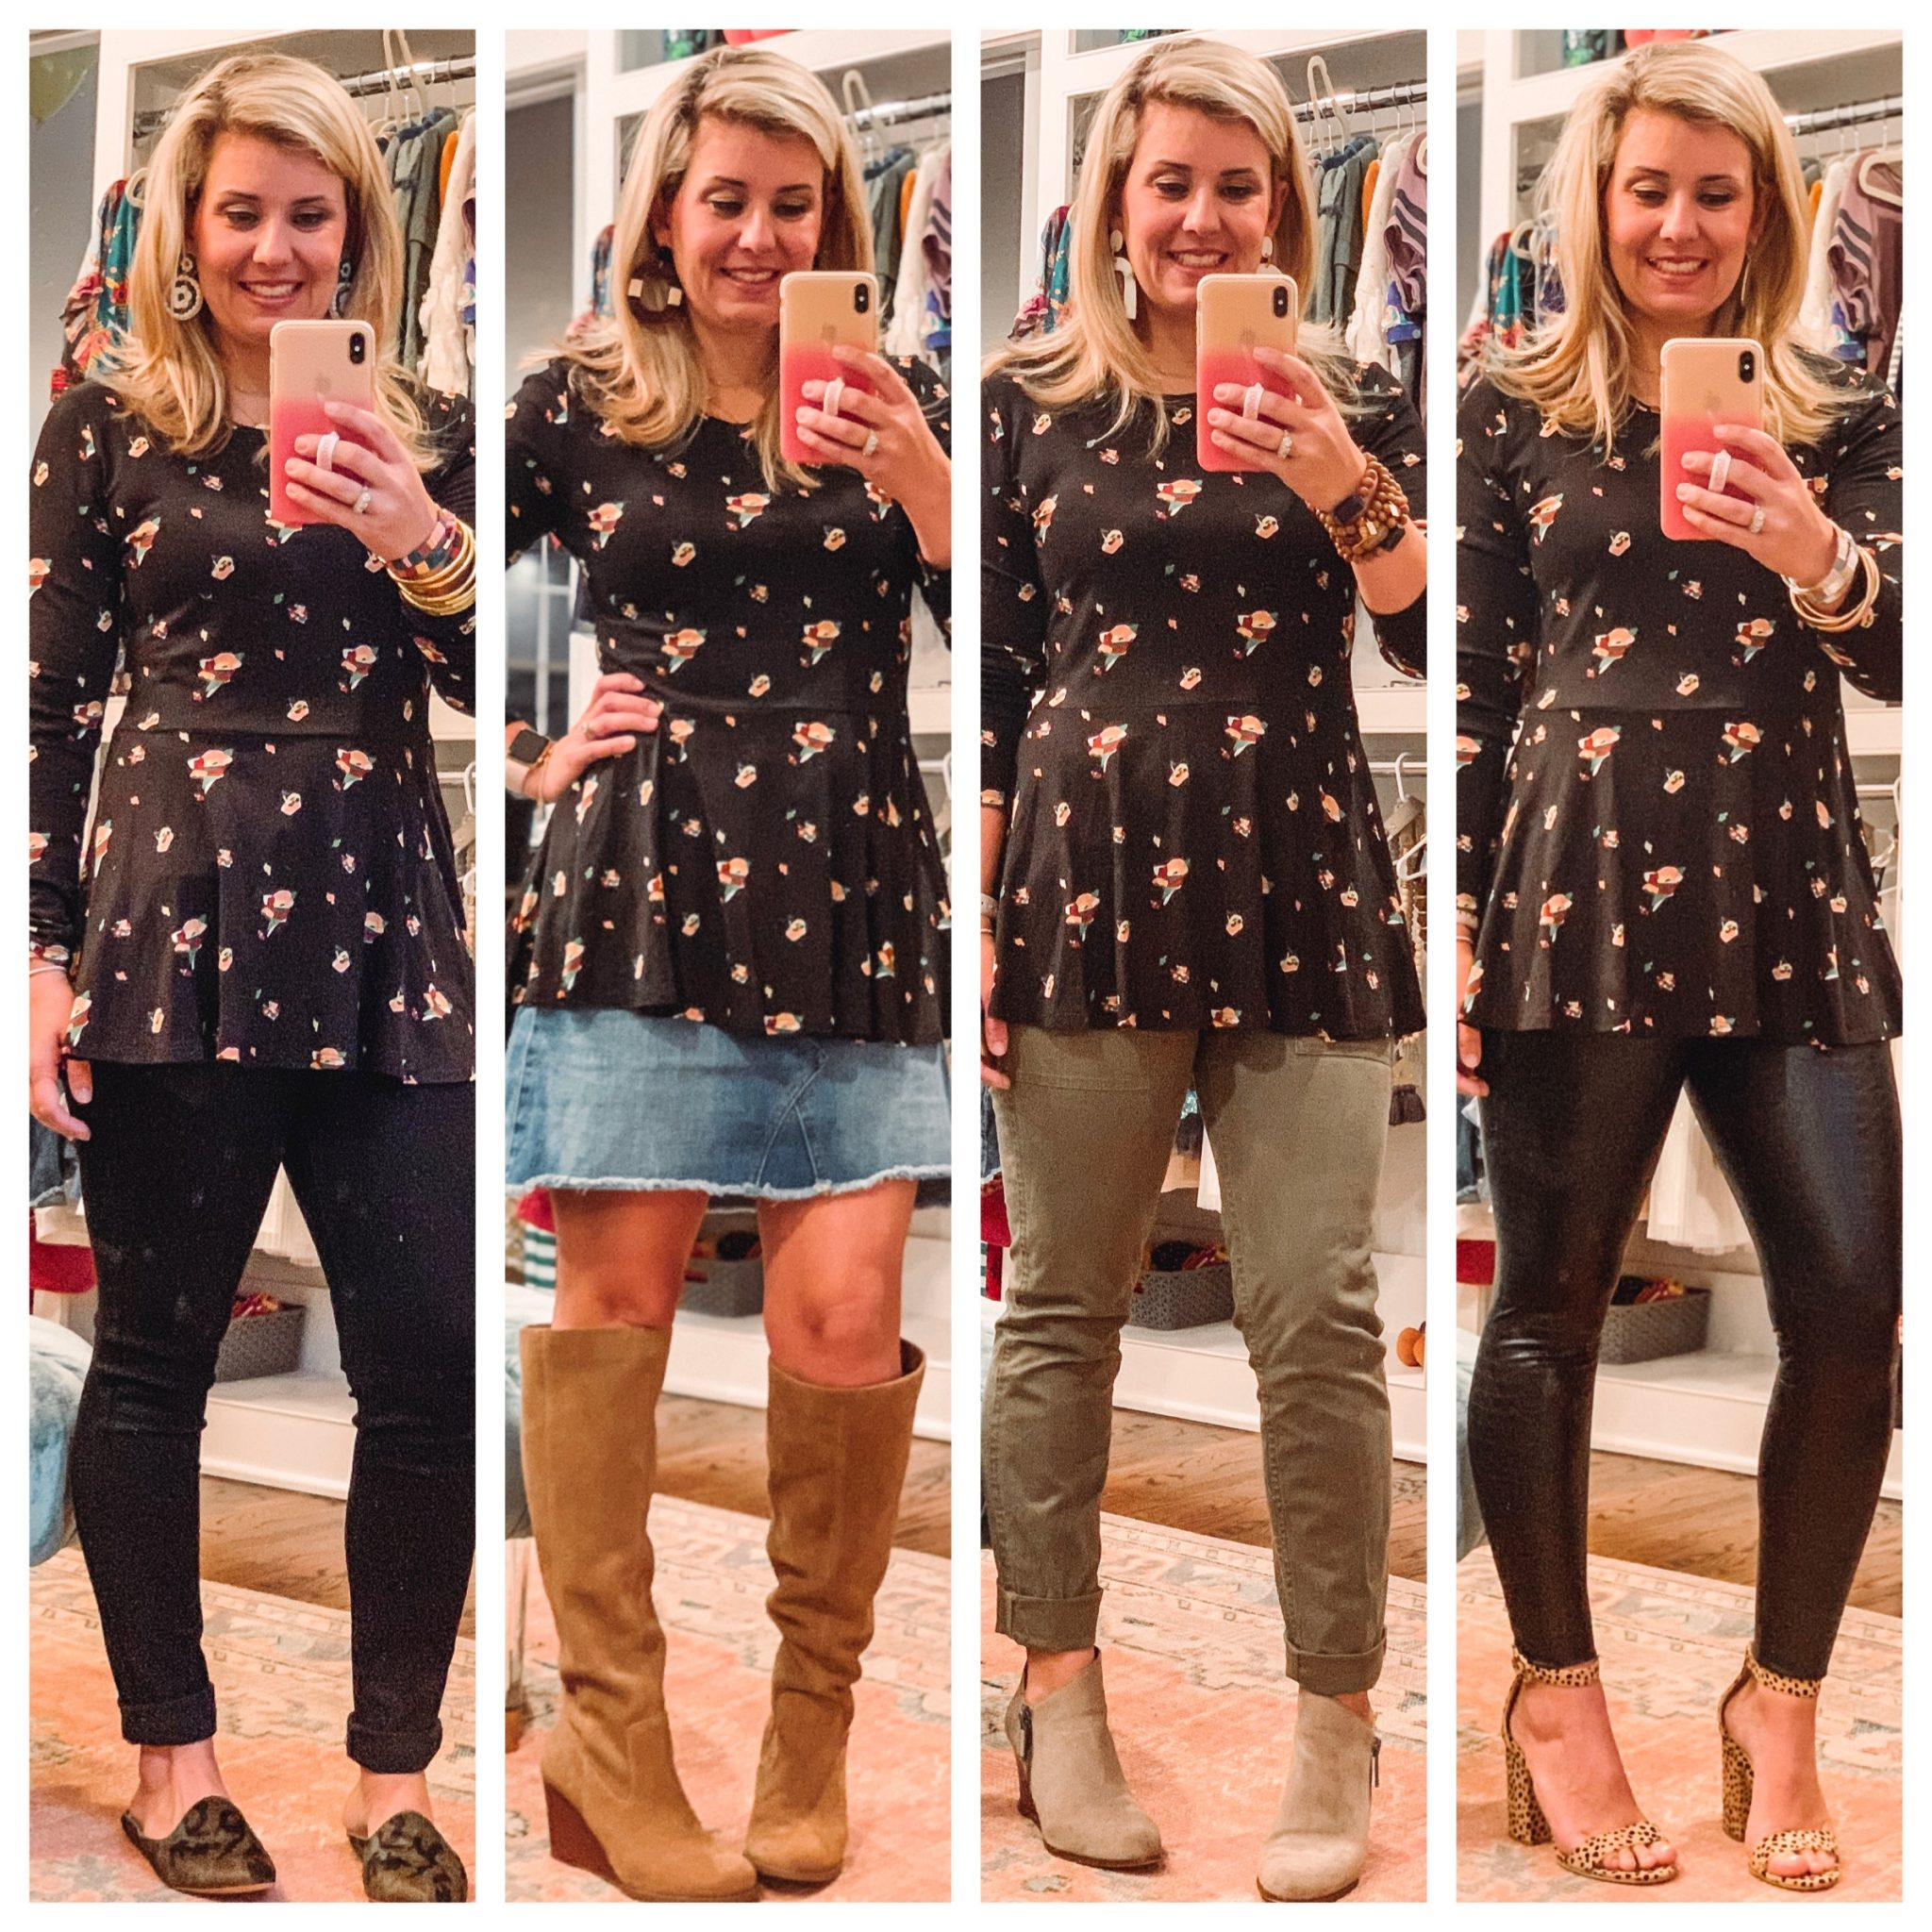 Dress blouse worn four different ways